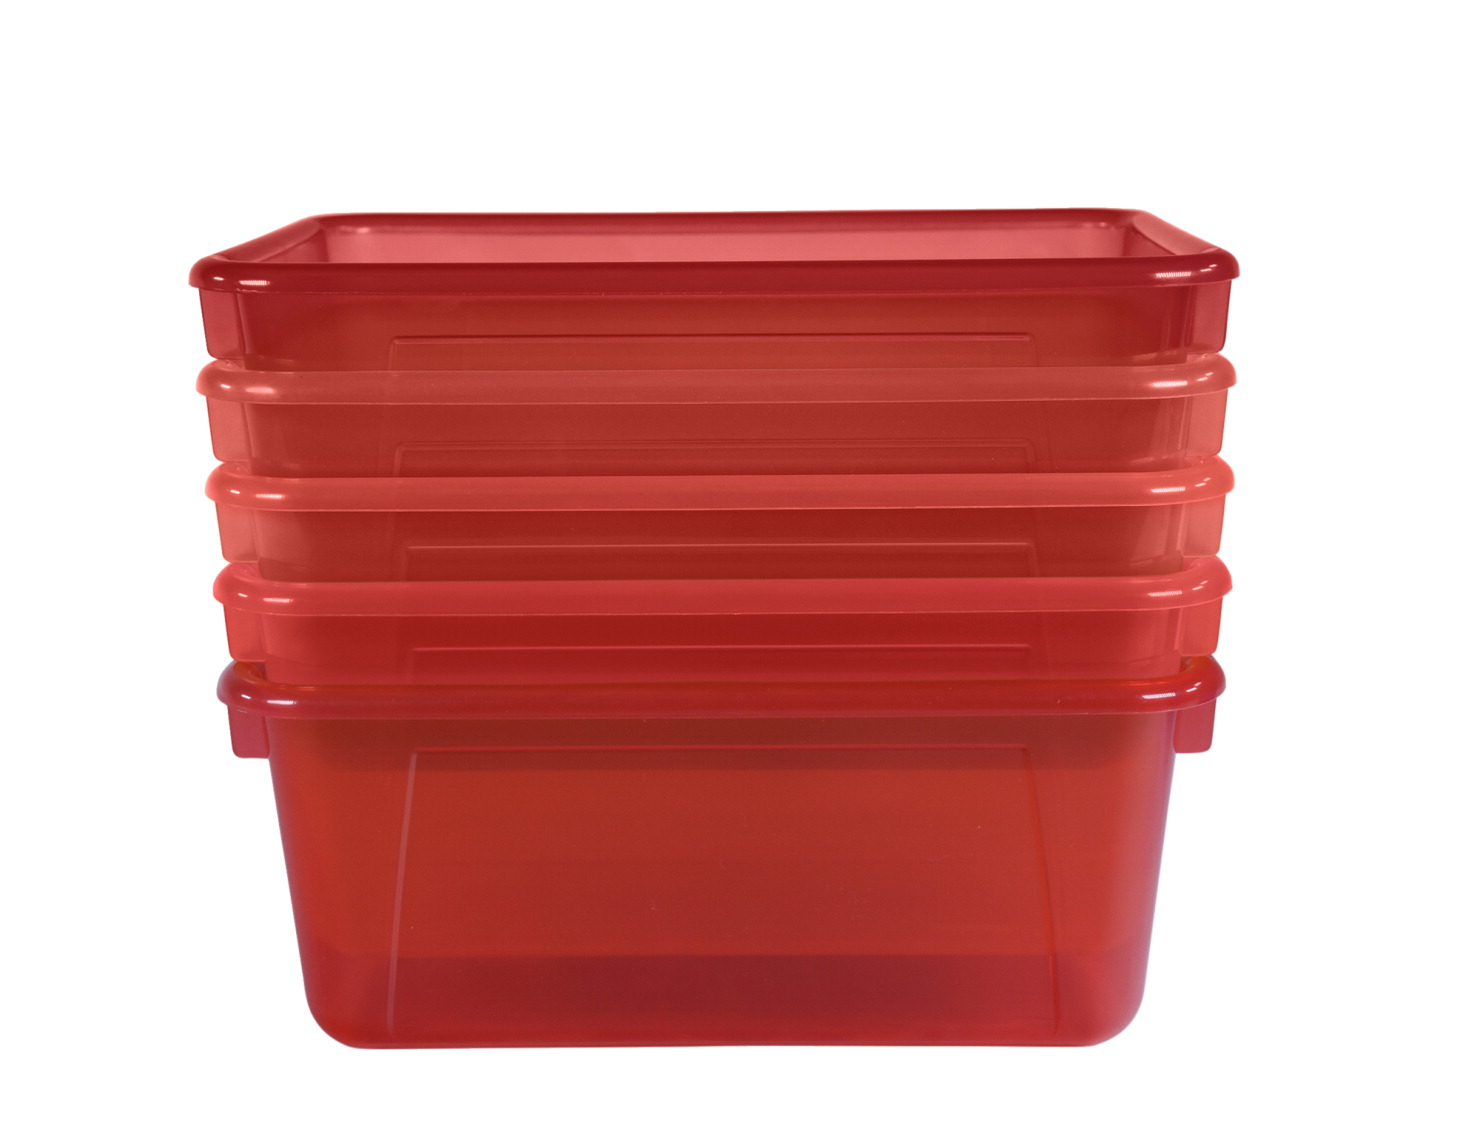 School Smart Translucent Cubby Bin, Small, 12 x 8 x 5 Inches, Candy Red, Pack of 5